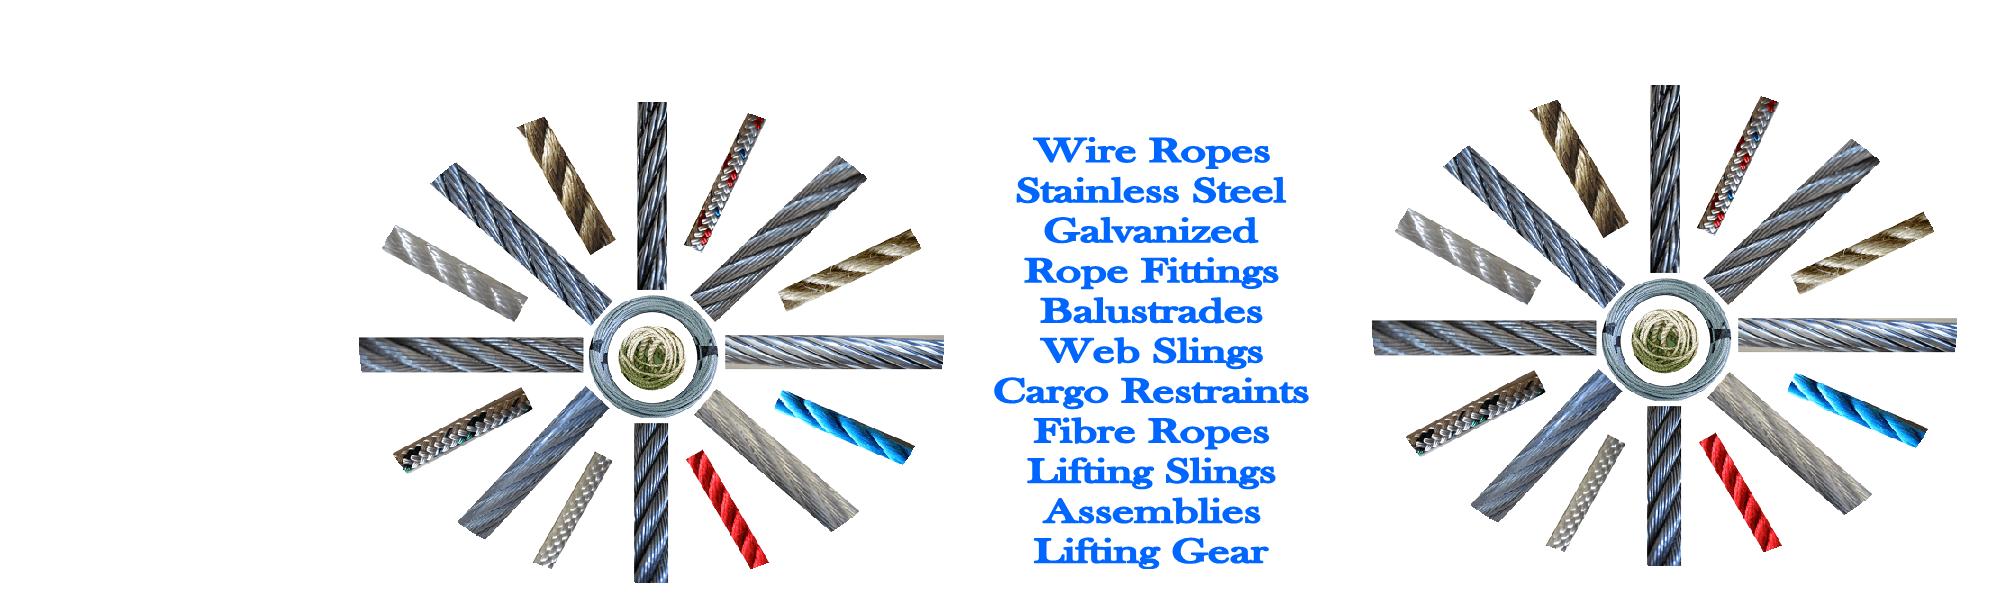 19x7 Rotation Resistant Wire Rope | Non Rotating Ropes | RSD